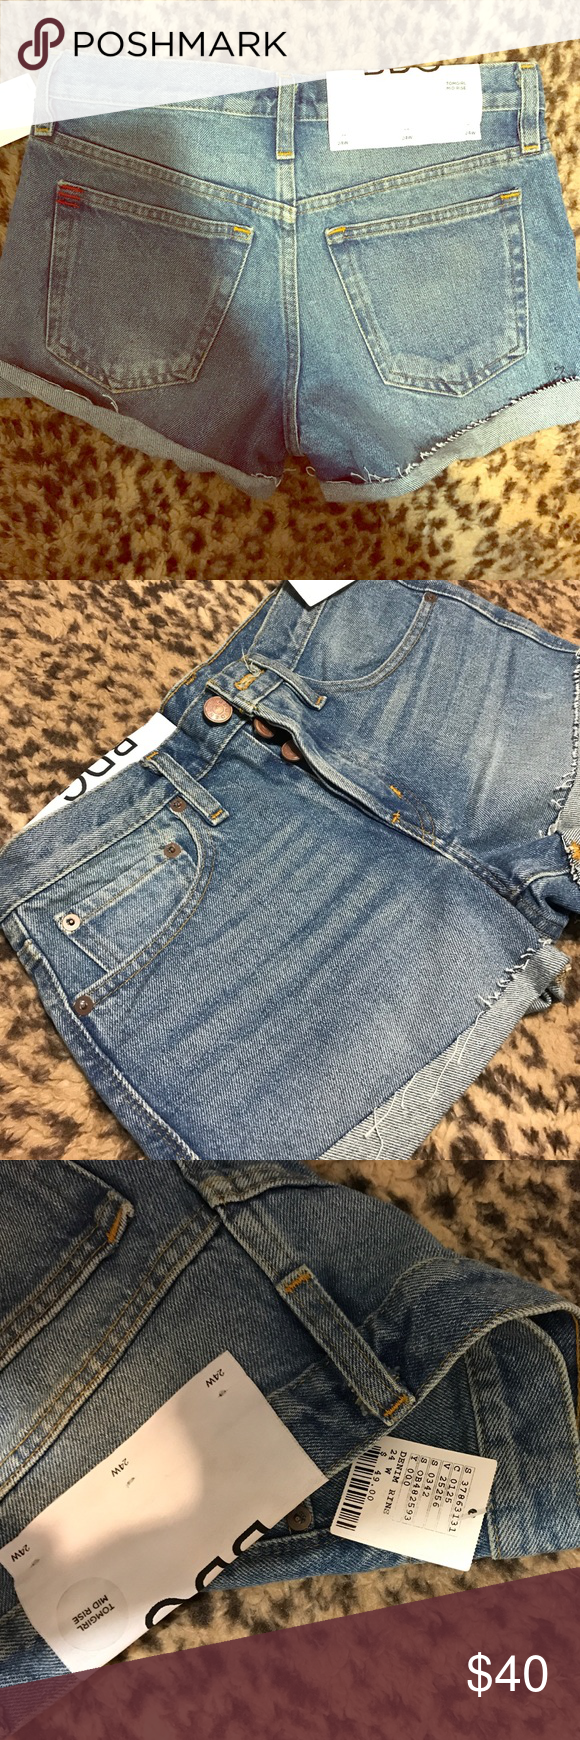 BDG Urban Outfitters shorts Brand new, with tags. Never worn. Denim rinse. Size 24 waist BDG Shorts Jean Shorts